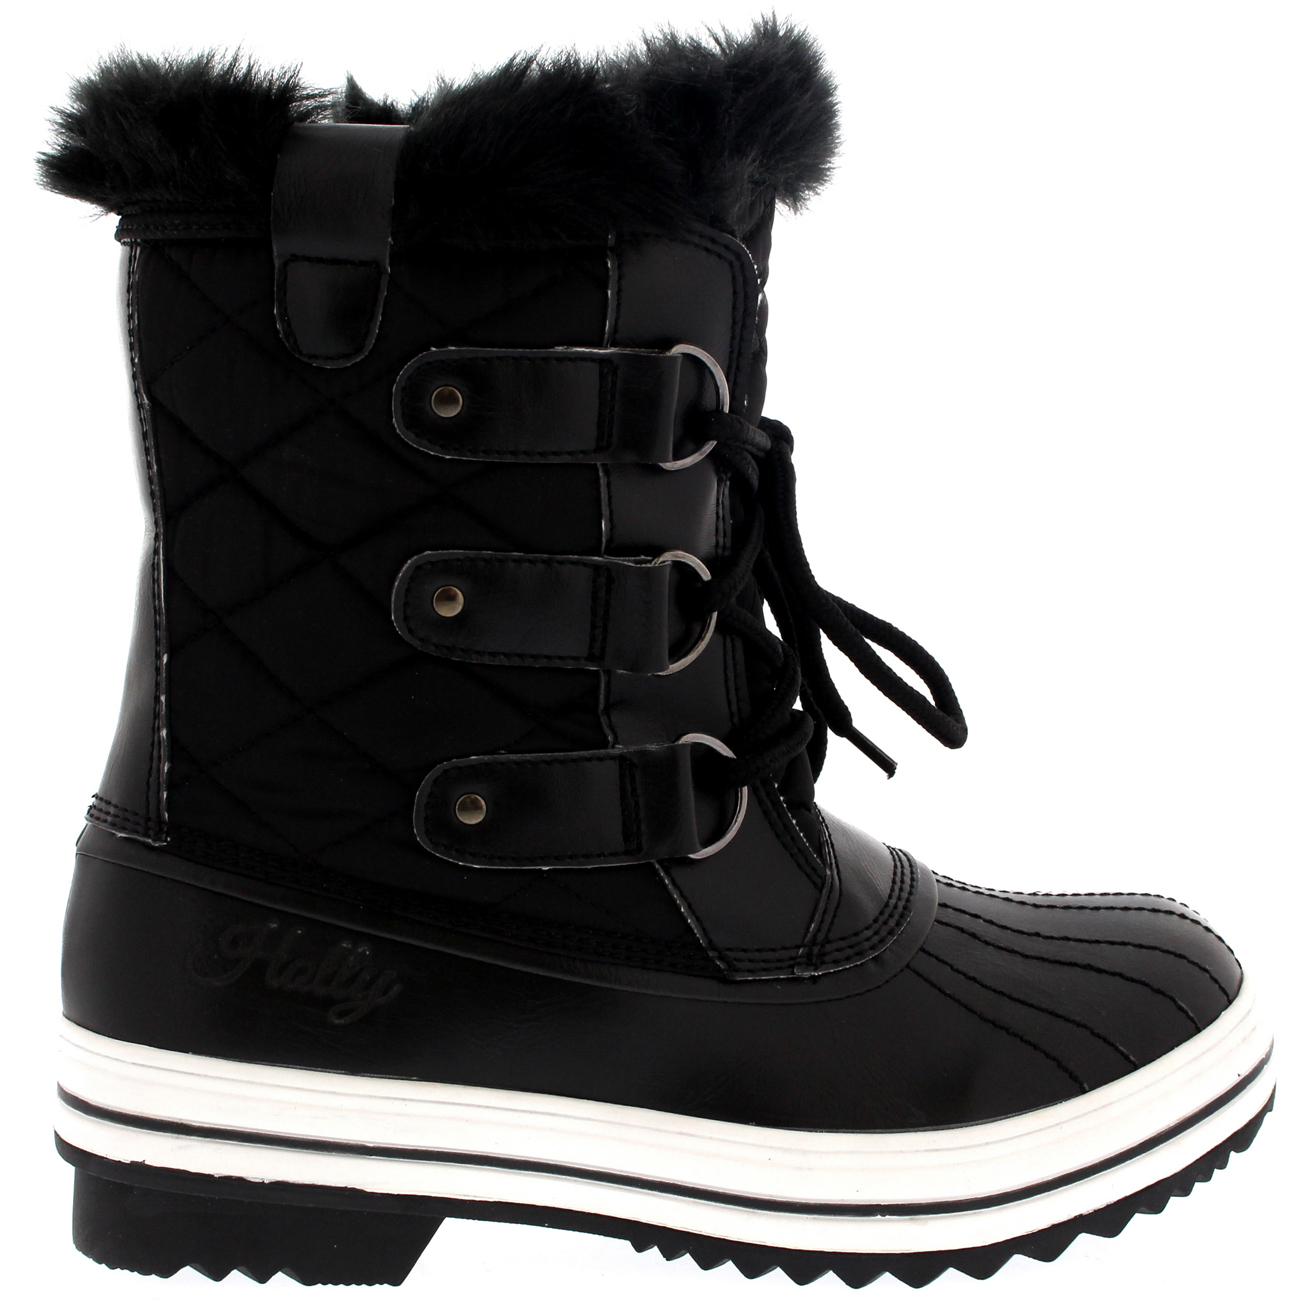 1236e9e84 Details about Ladies Snow Boot Nylon Short Winter Snow Fur Rain Warm  Waterproof Boot All Sizes